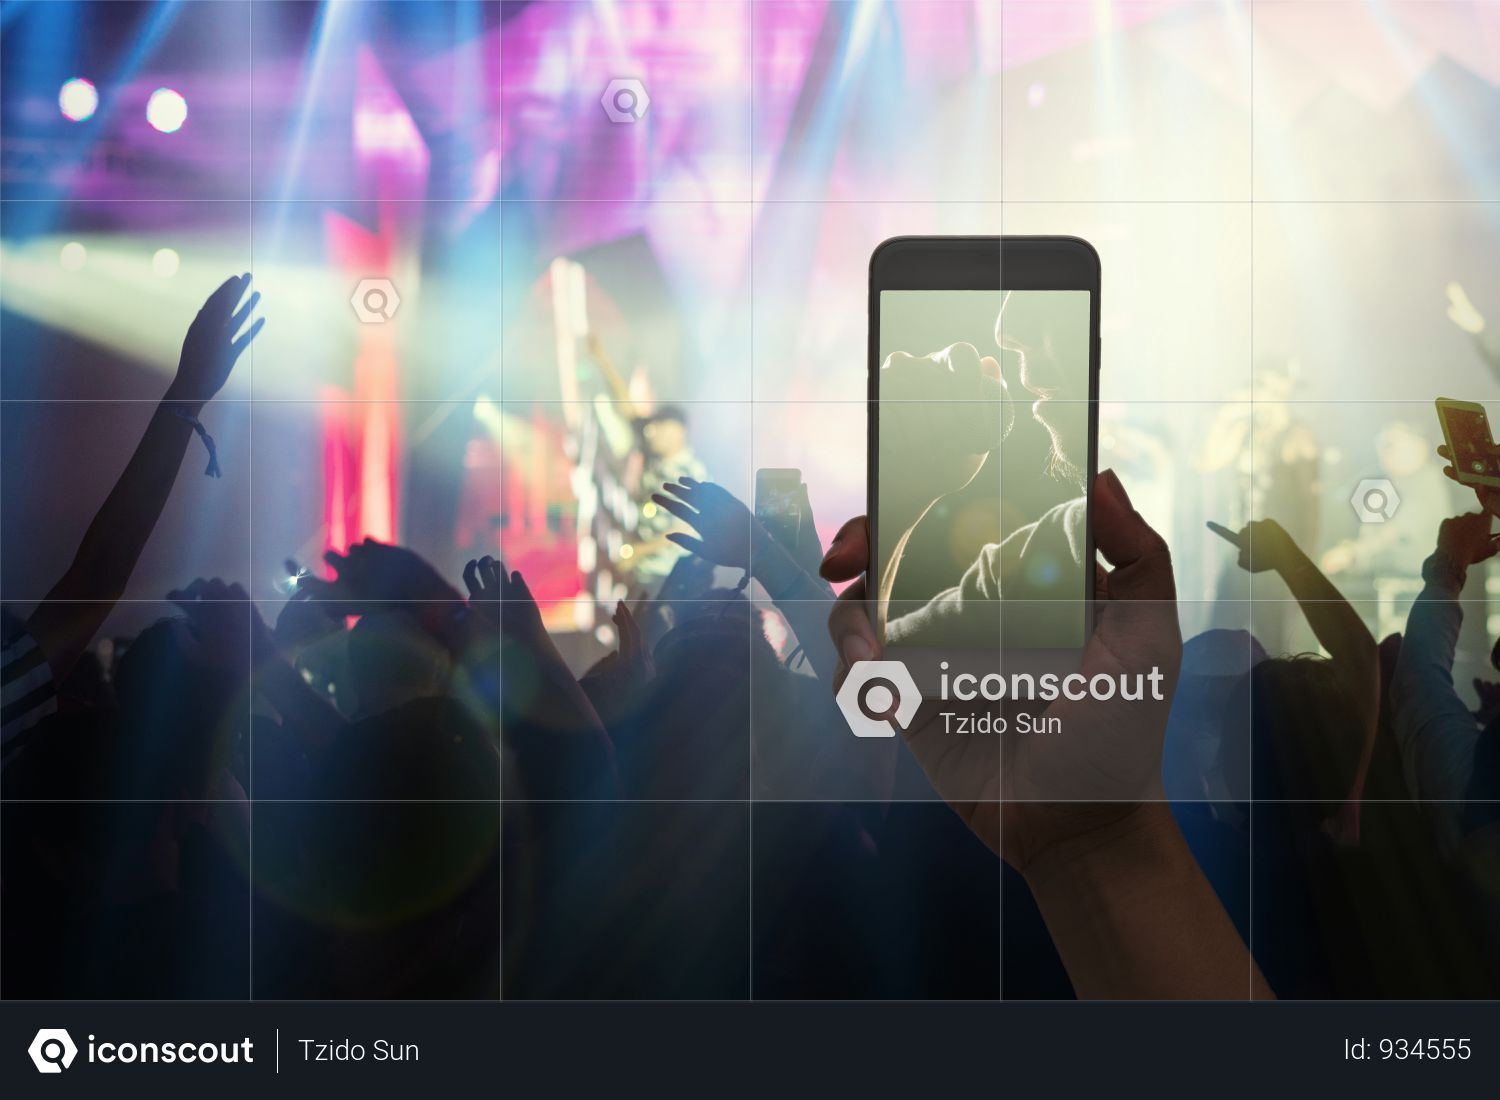 Premium Female Taking Live Video During Live Music Concert Photo Download In Png Jpg Format Music Concert Concert Live Music